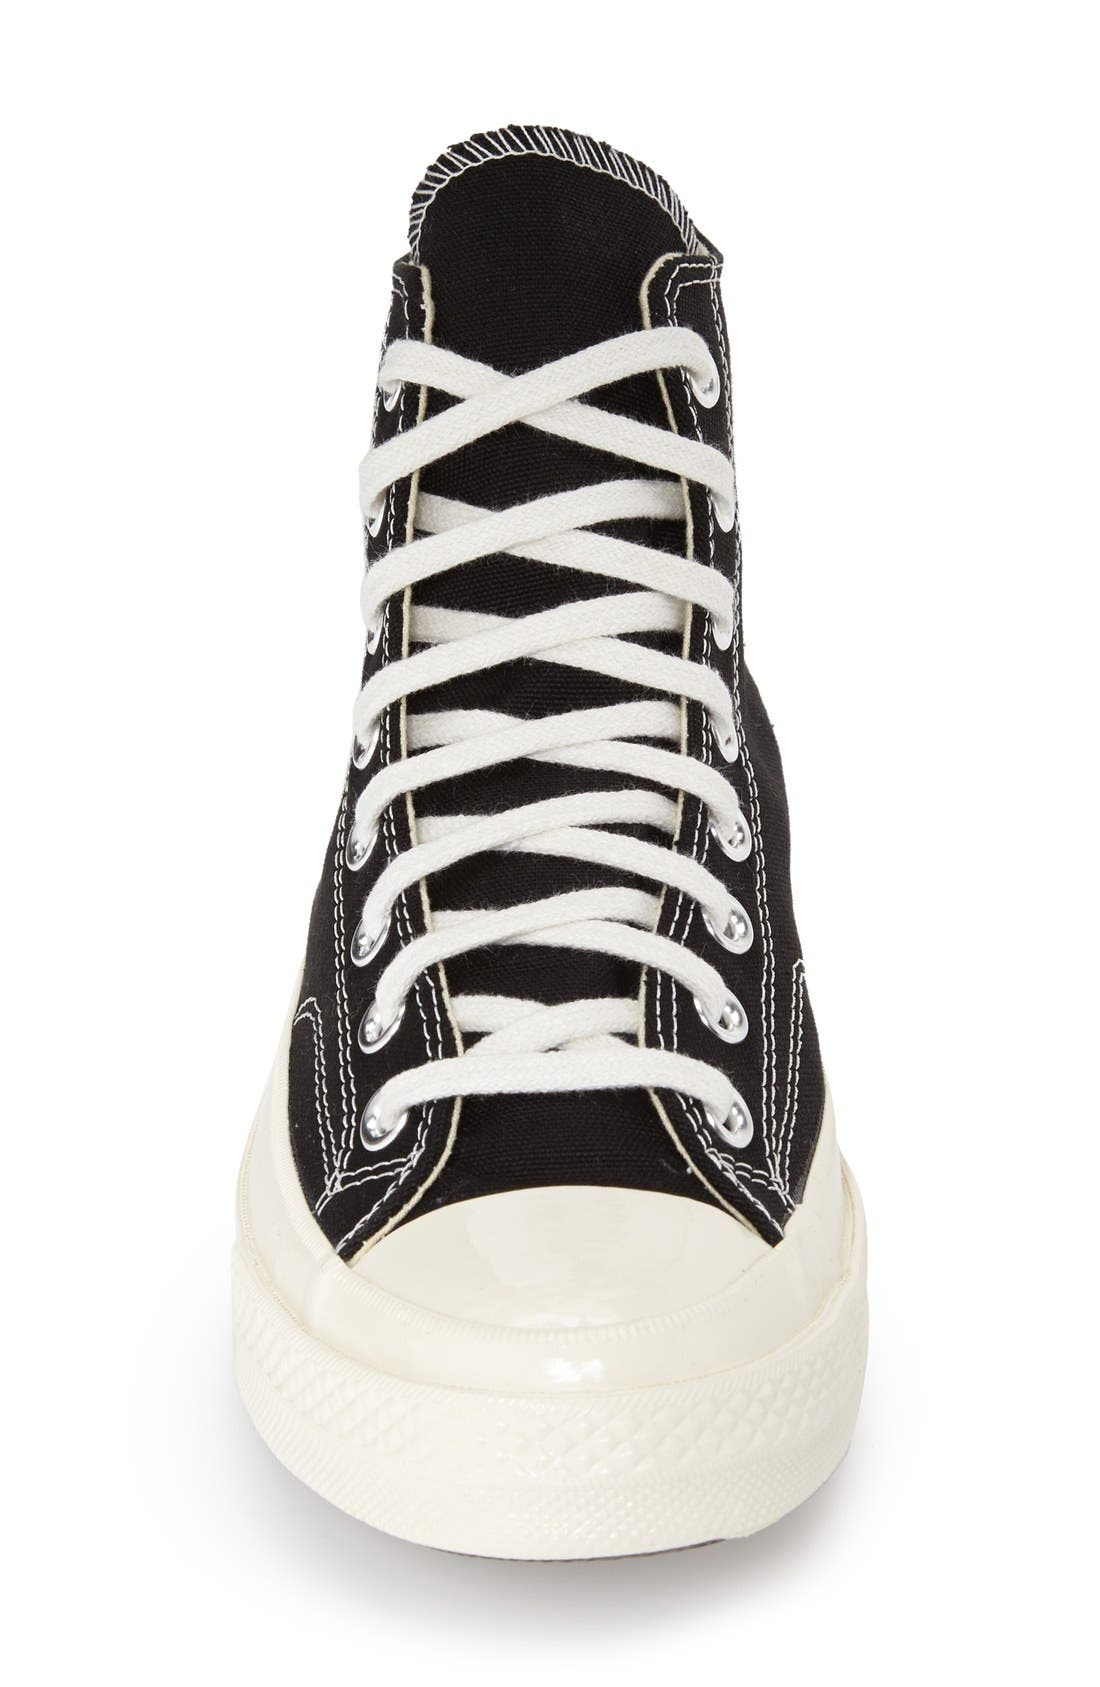 PLAY x Converse Chuck Taylor<sup>®</sup> - Hidden Heart High Top Sneaker,                             Alternate thumbnail 3, color,                             BLACK CANVAS